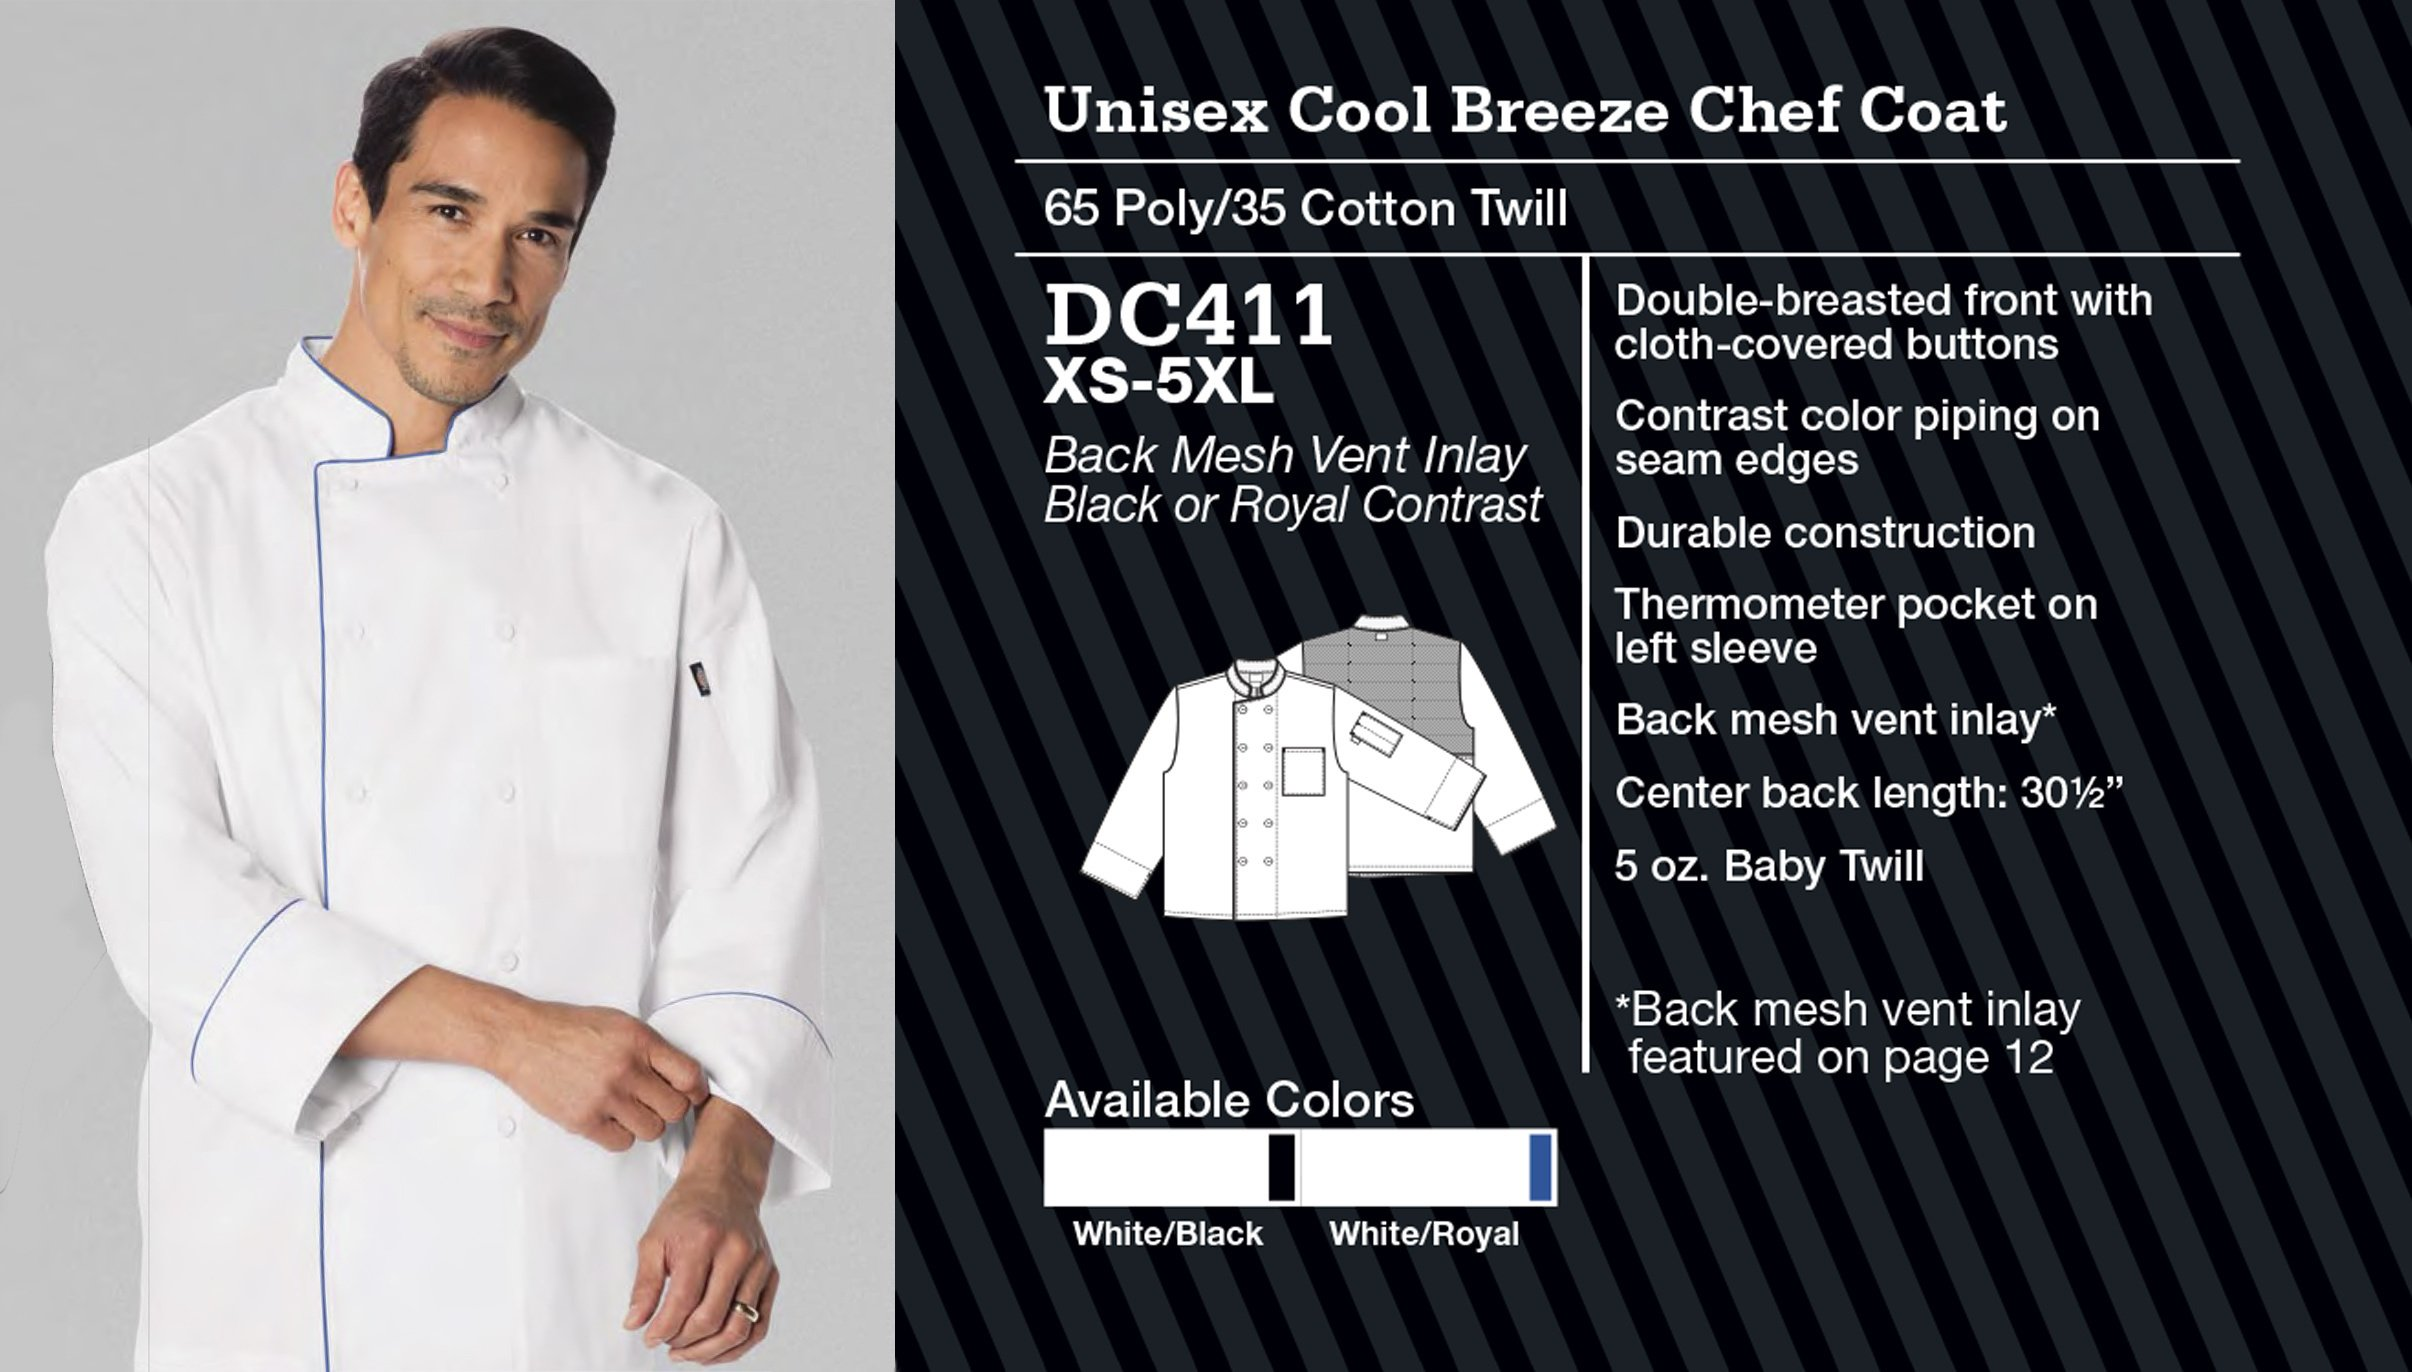 Abrigo de Chef Unisex Cool Breeze. DC411.